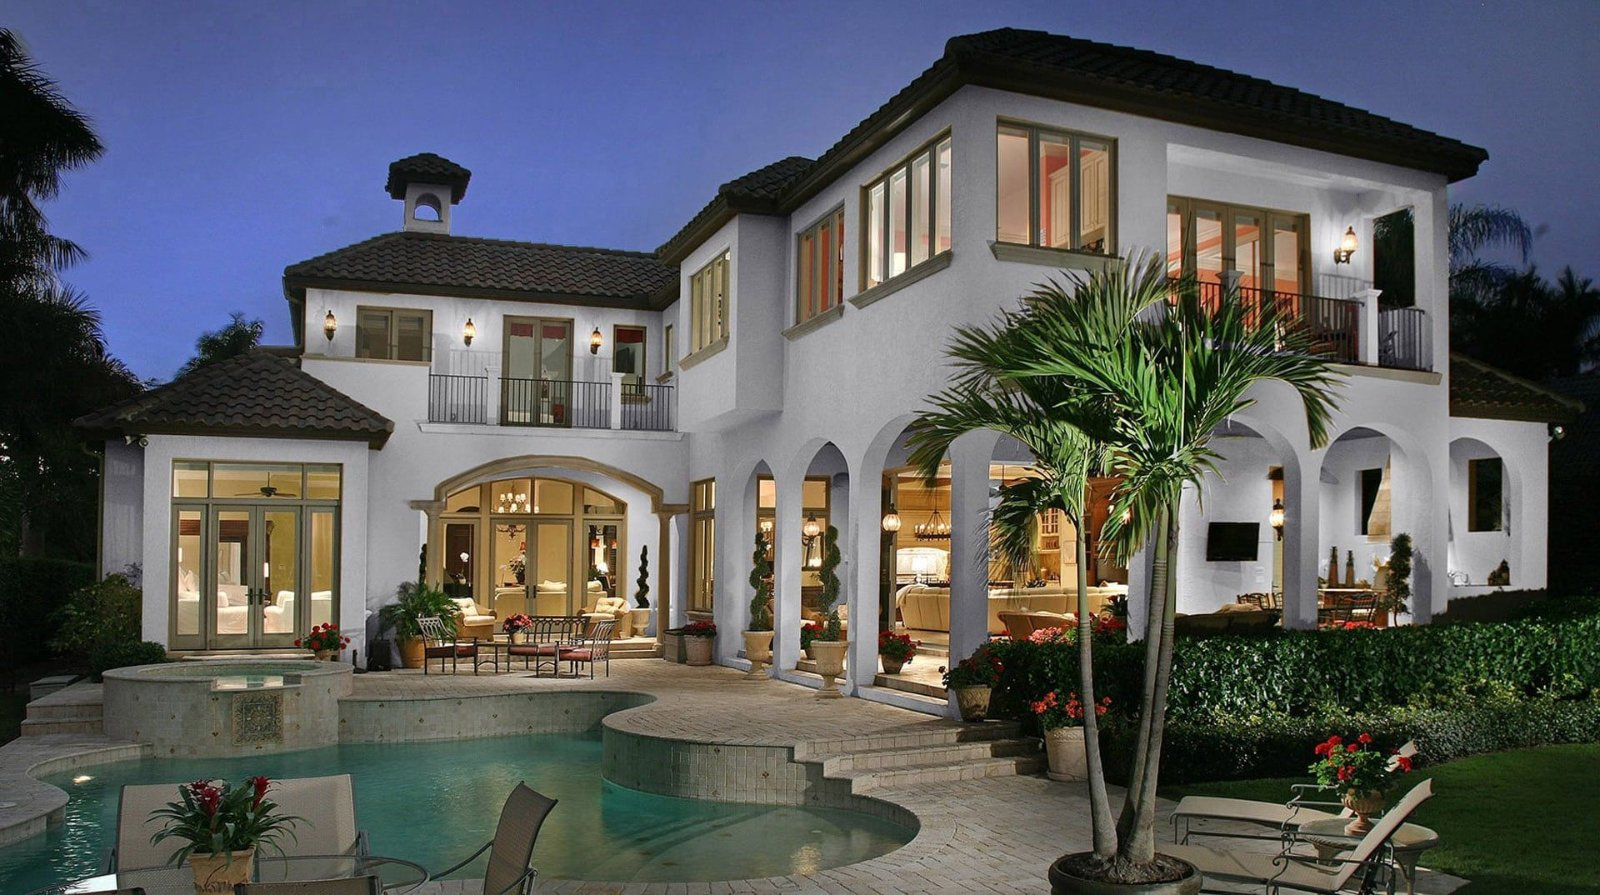 fort myers conforming mortgage, fort myers conforming mortgage rates, fort myers conforming mortgage broker, fort myers conforming mortgage lender, mortgage fort myers, fort myers conforming mortgage,